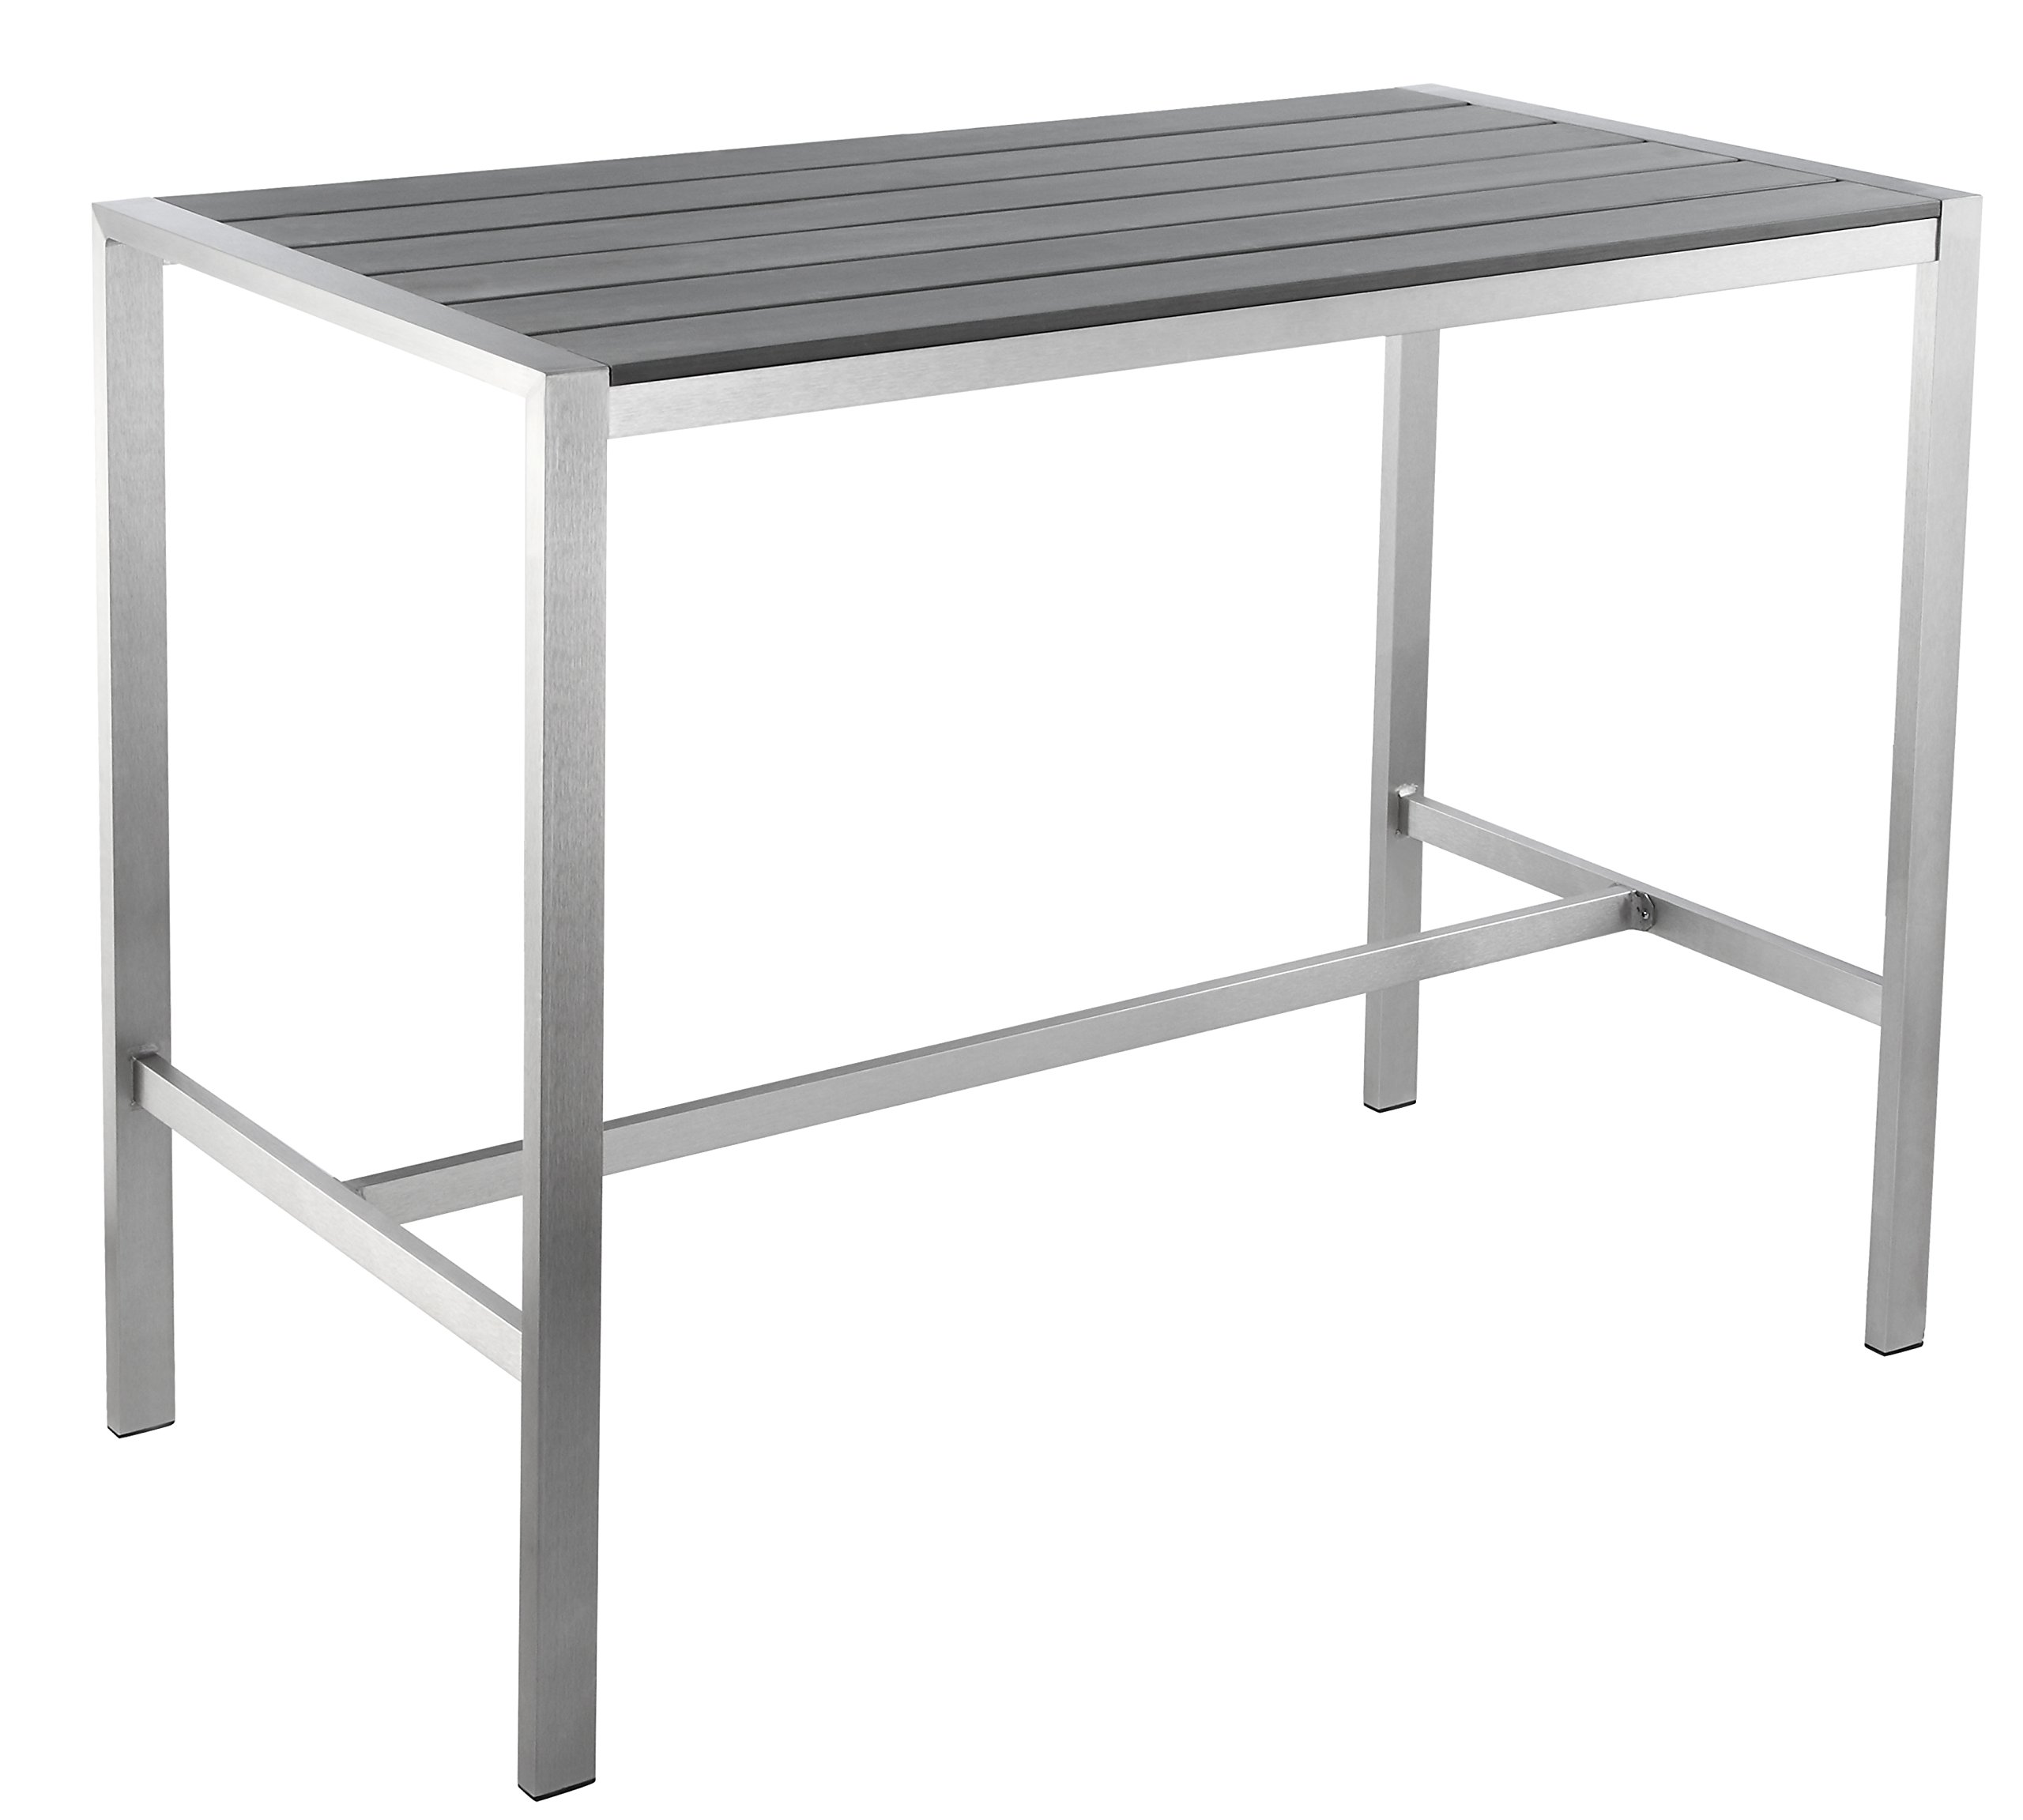 Haven Aluminum Outdoor Long Bar Table in Slate Grey Poly Wood, Brushed Nickel by Cortesi Home